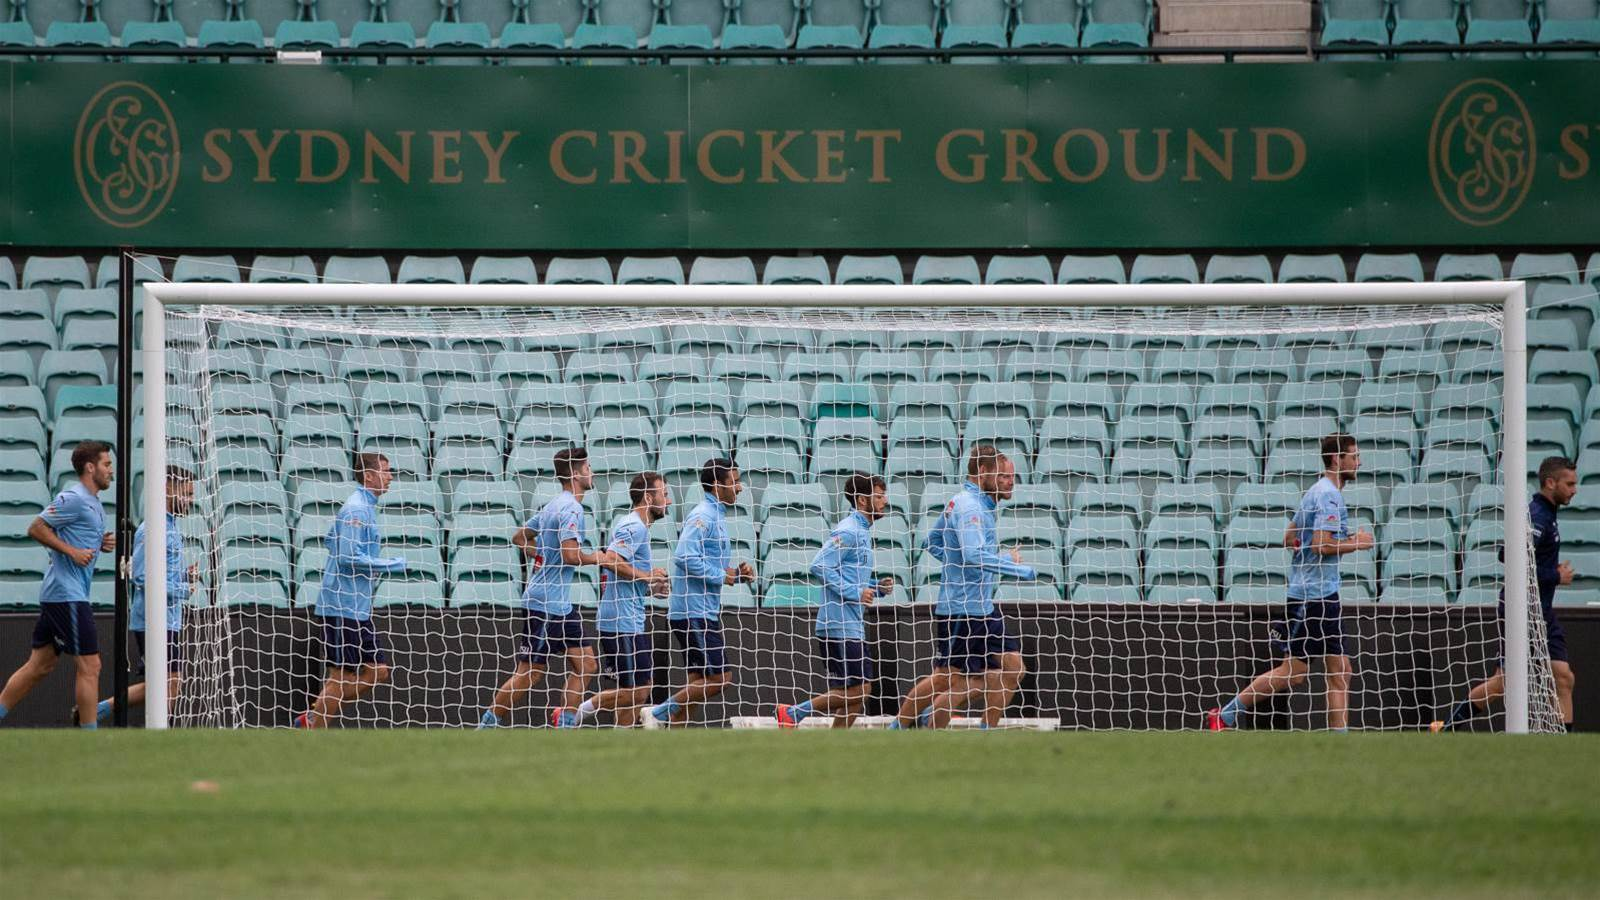 In pics: Sydney train for Big Blue at SCG